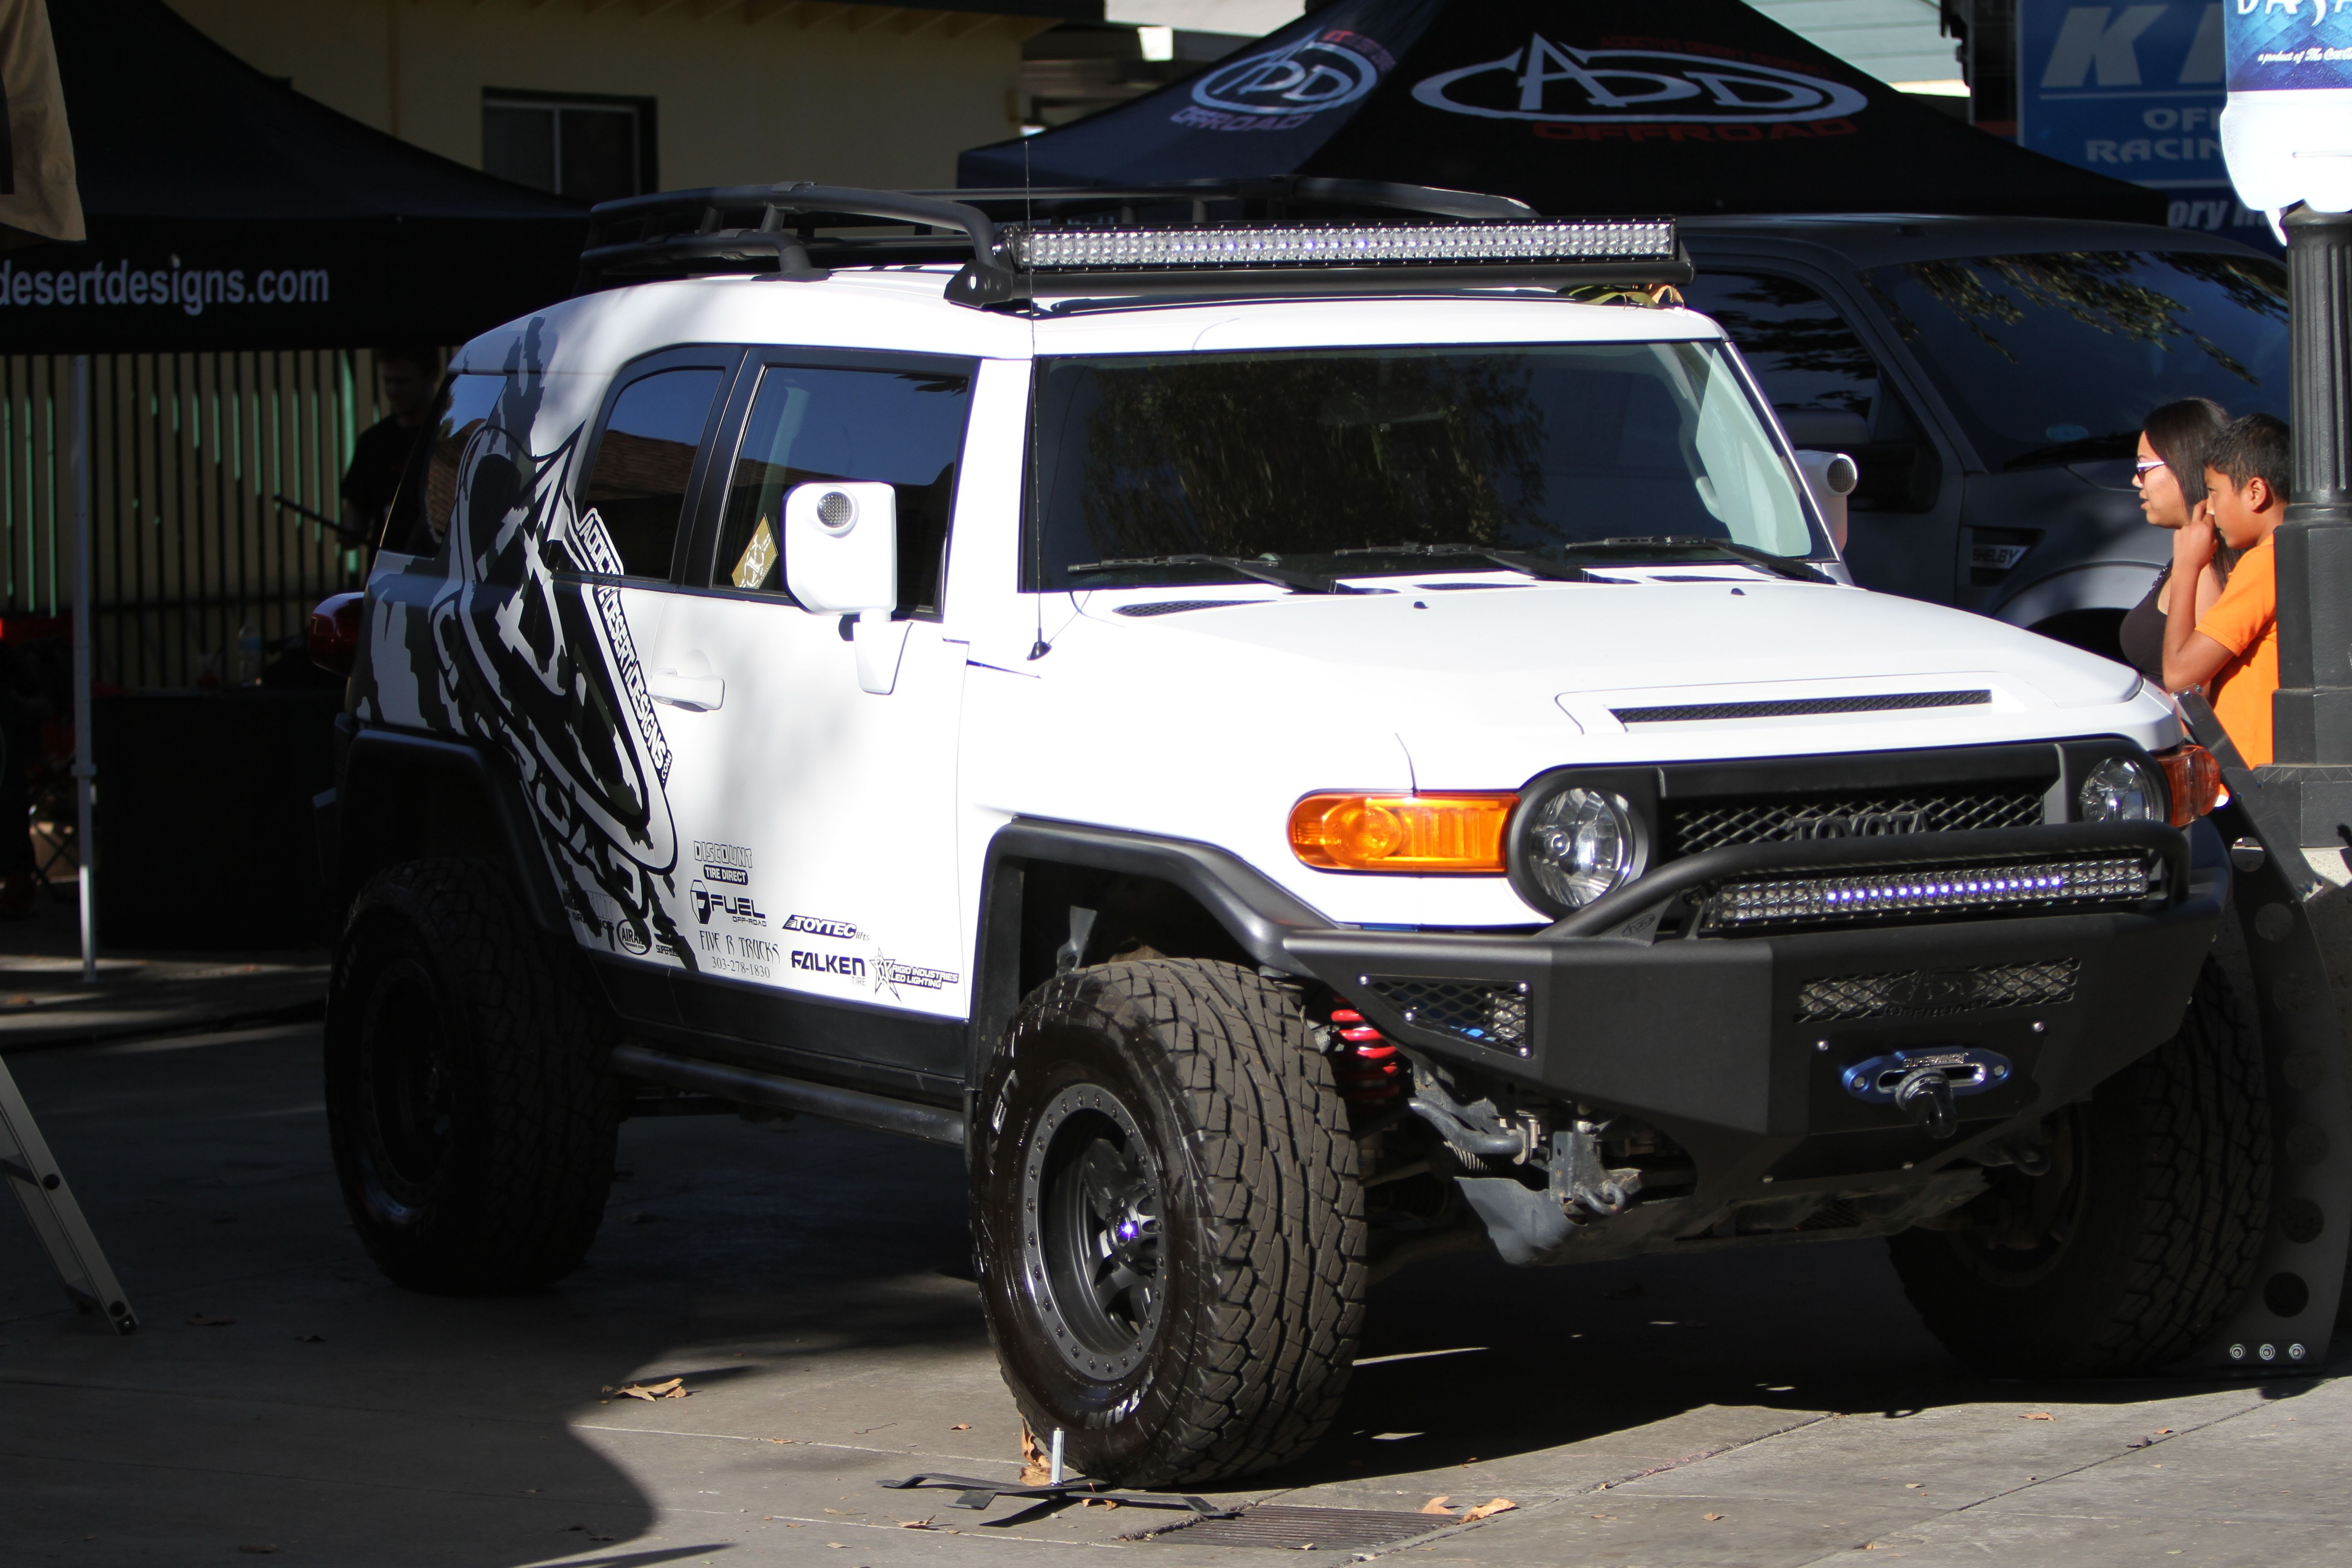 Toyota fj cruiser stealth fighter front bumper toyota fj cruiser toyota fj cruiser stealth fighter front bumper with sweet light bar mozeypictures Image collections